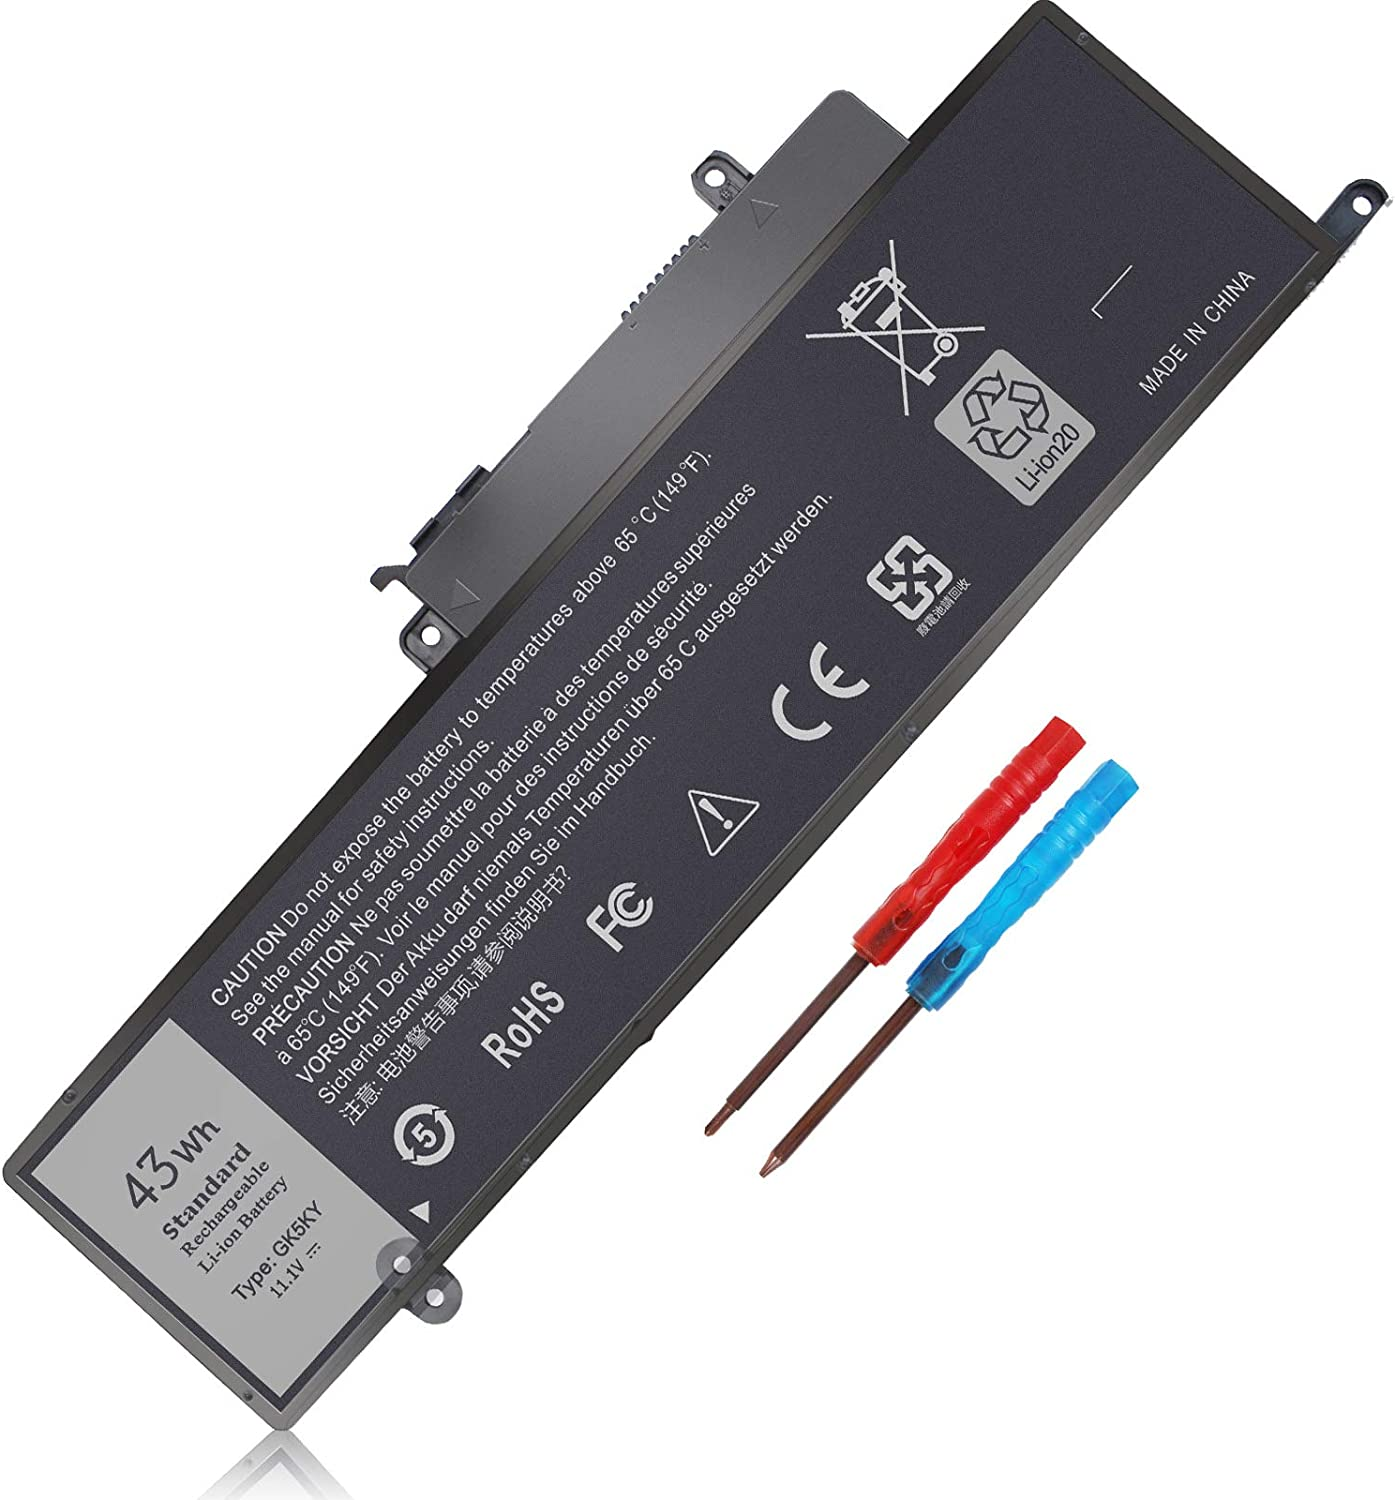 GK5KY 43WH Battery for Dell Inspiron 11 3000 Series 11-3147 11-3157 11-3158 11-3153 11-3152 11-3148 13 7359 7353 7347 7352 7348 15 7558 7568 Series P20T P20T001 P55F P55F001 04K8YH 4K8YH RHN1C 92NCT